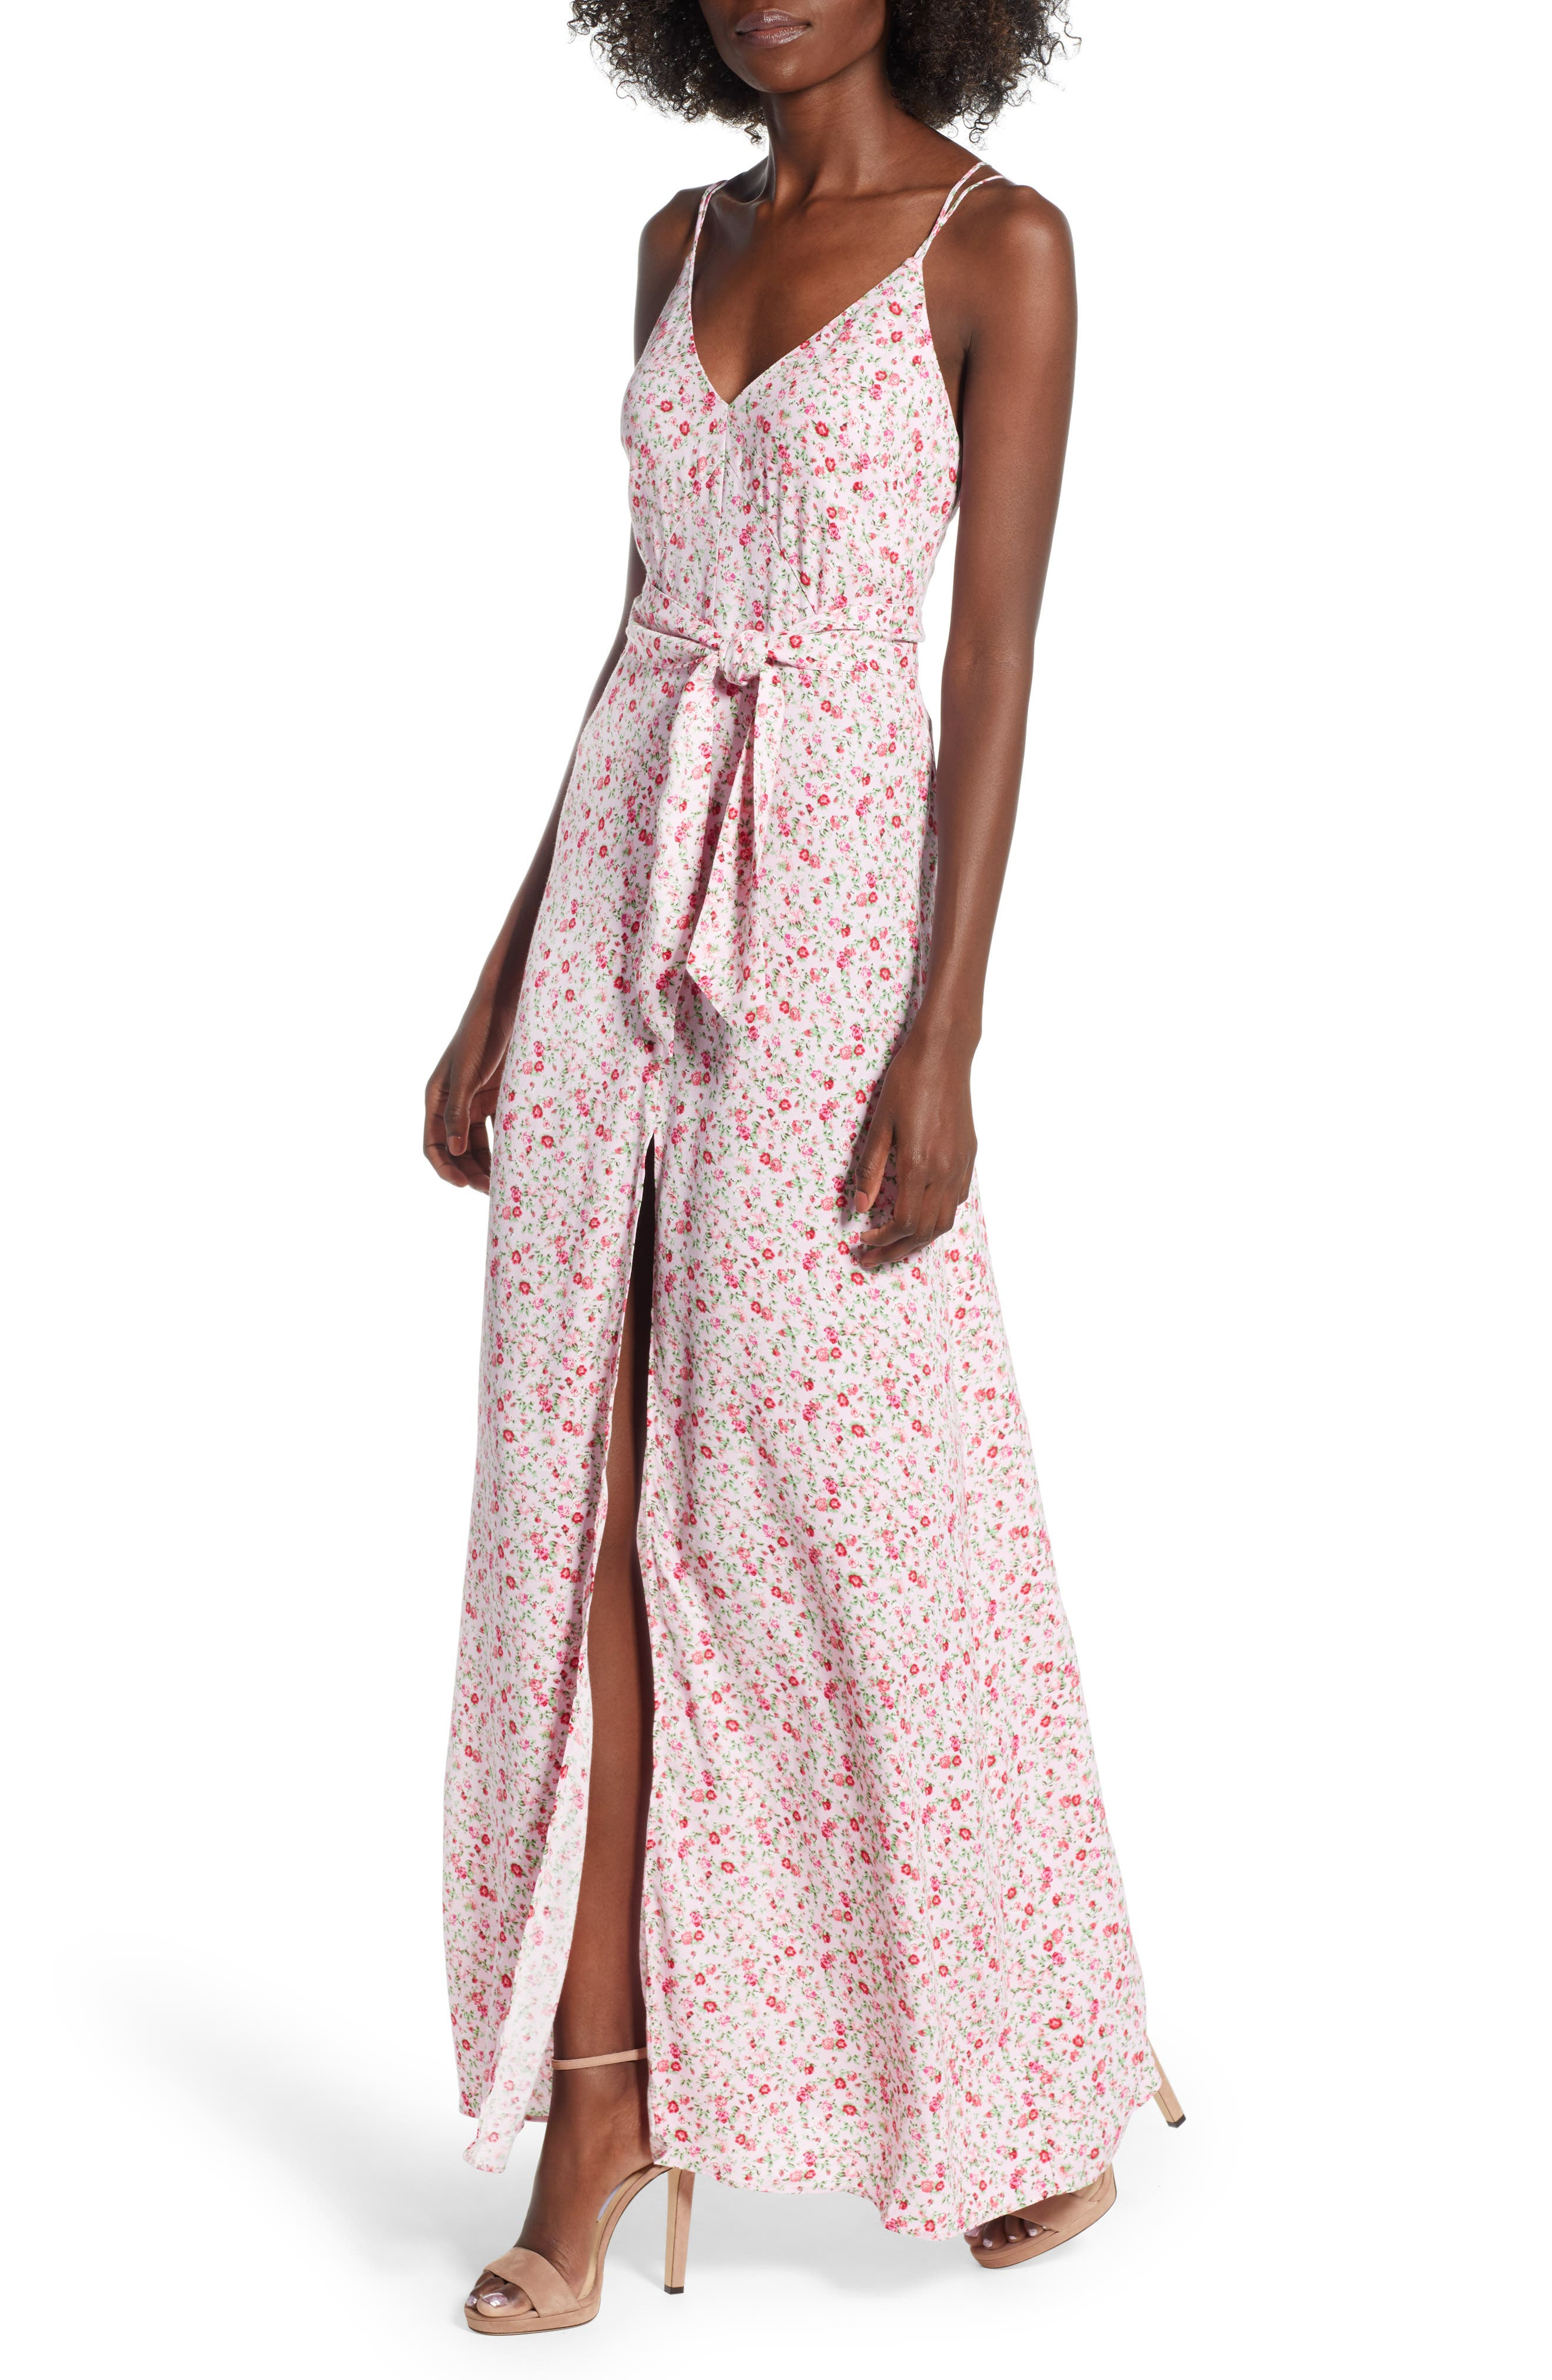 Diego Maxi Dress,                         Main,                         color, BABY PINK DITSY